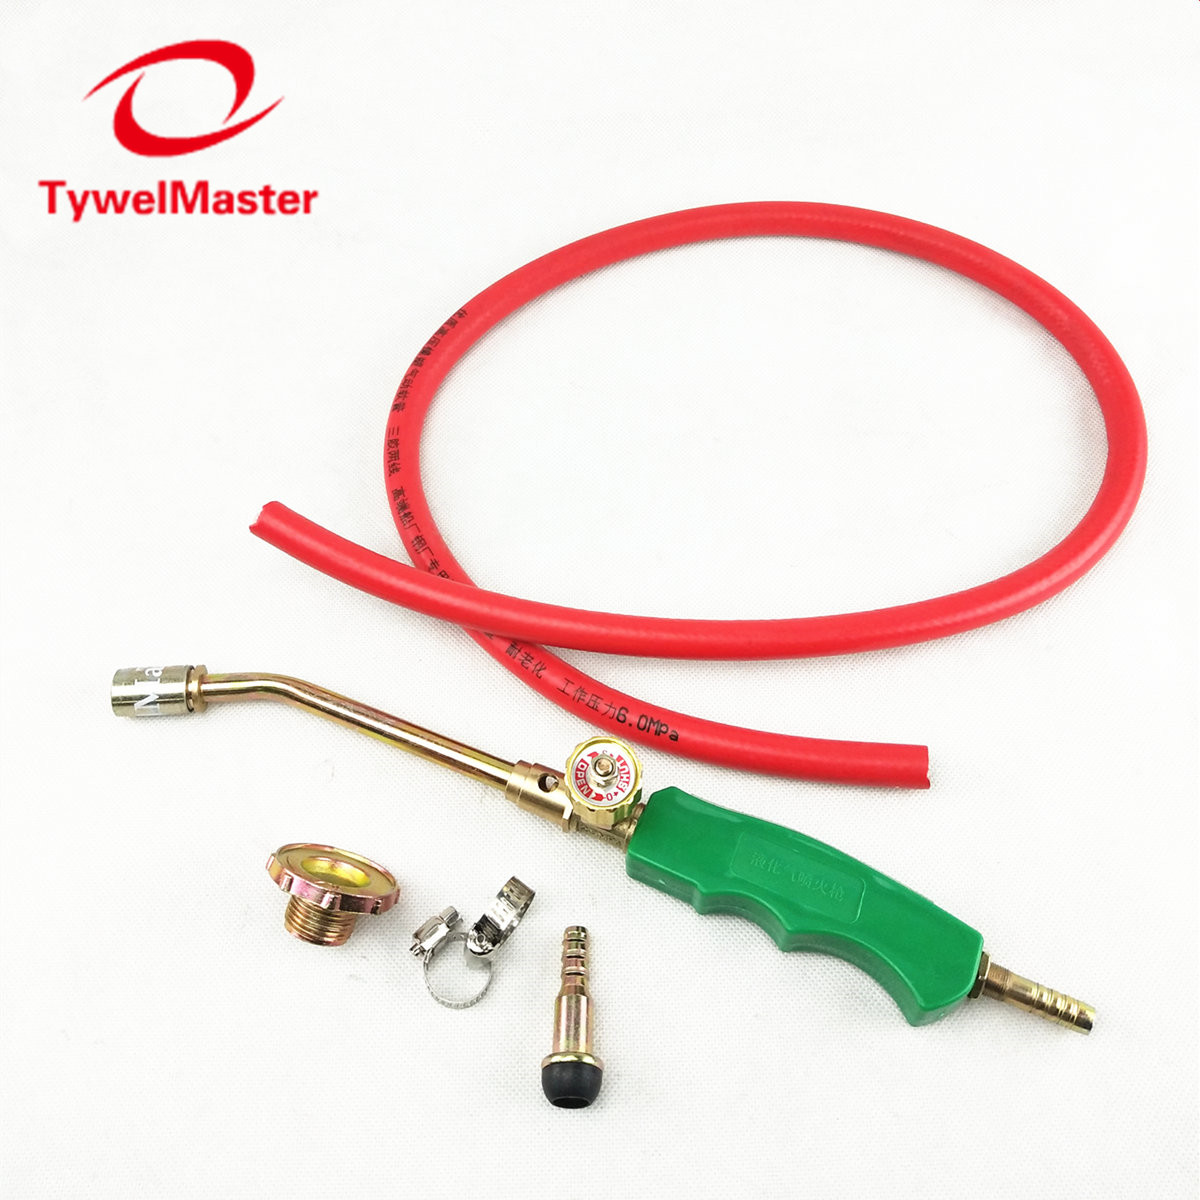 Liquefied Gas Blowtorch Burner Torch Suitable For Quenching Jewellery Brazing Welding Heating Drying Unhairing Type 15